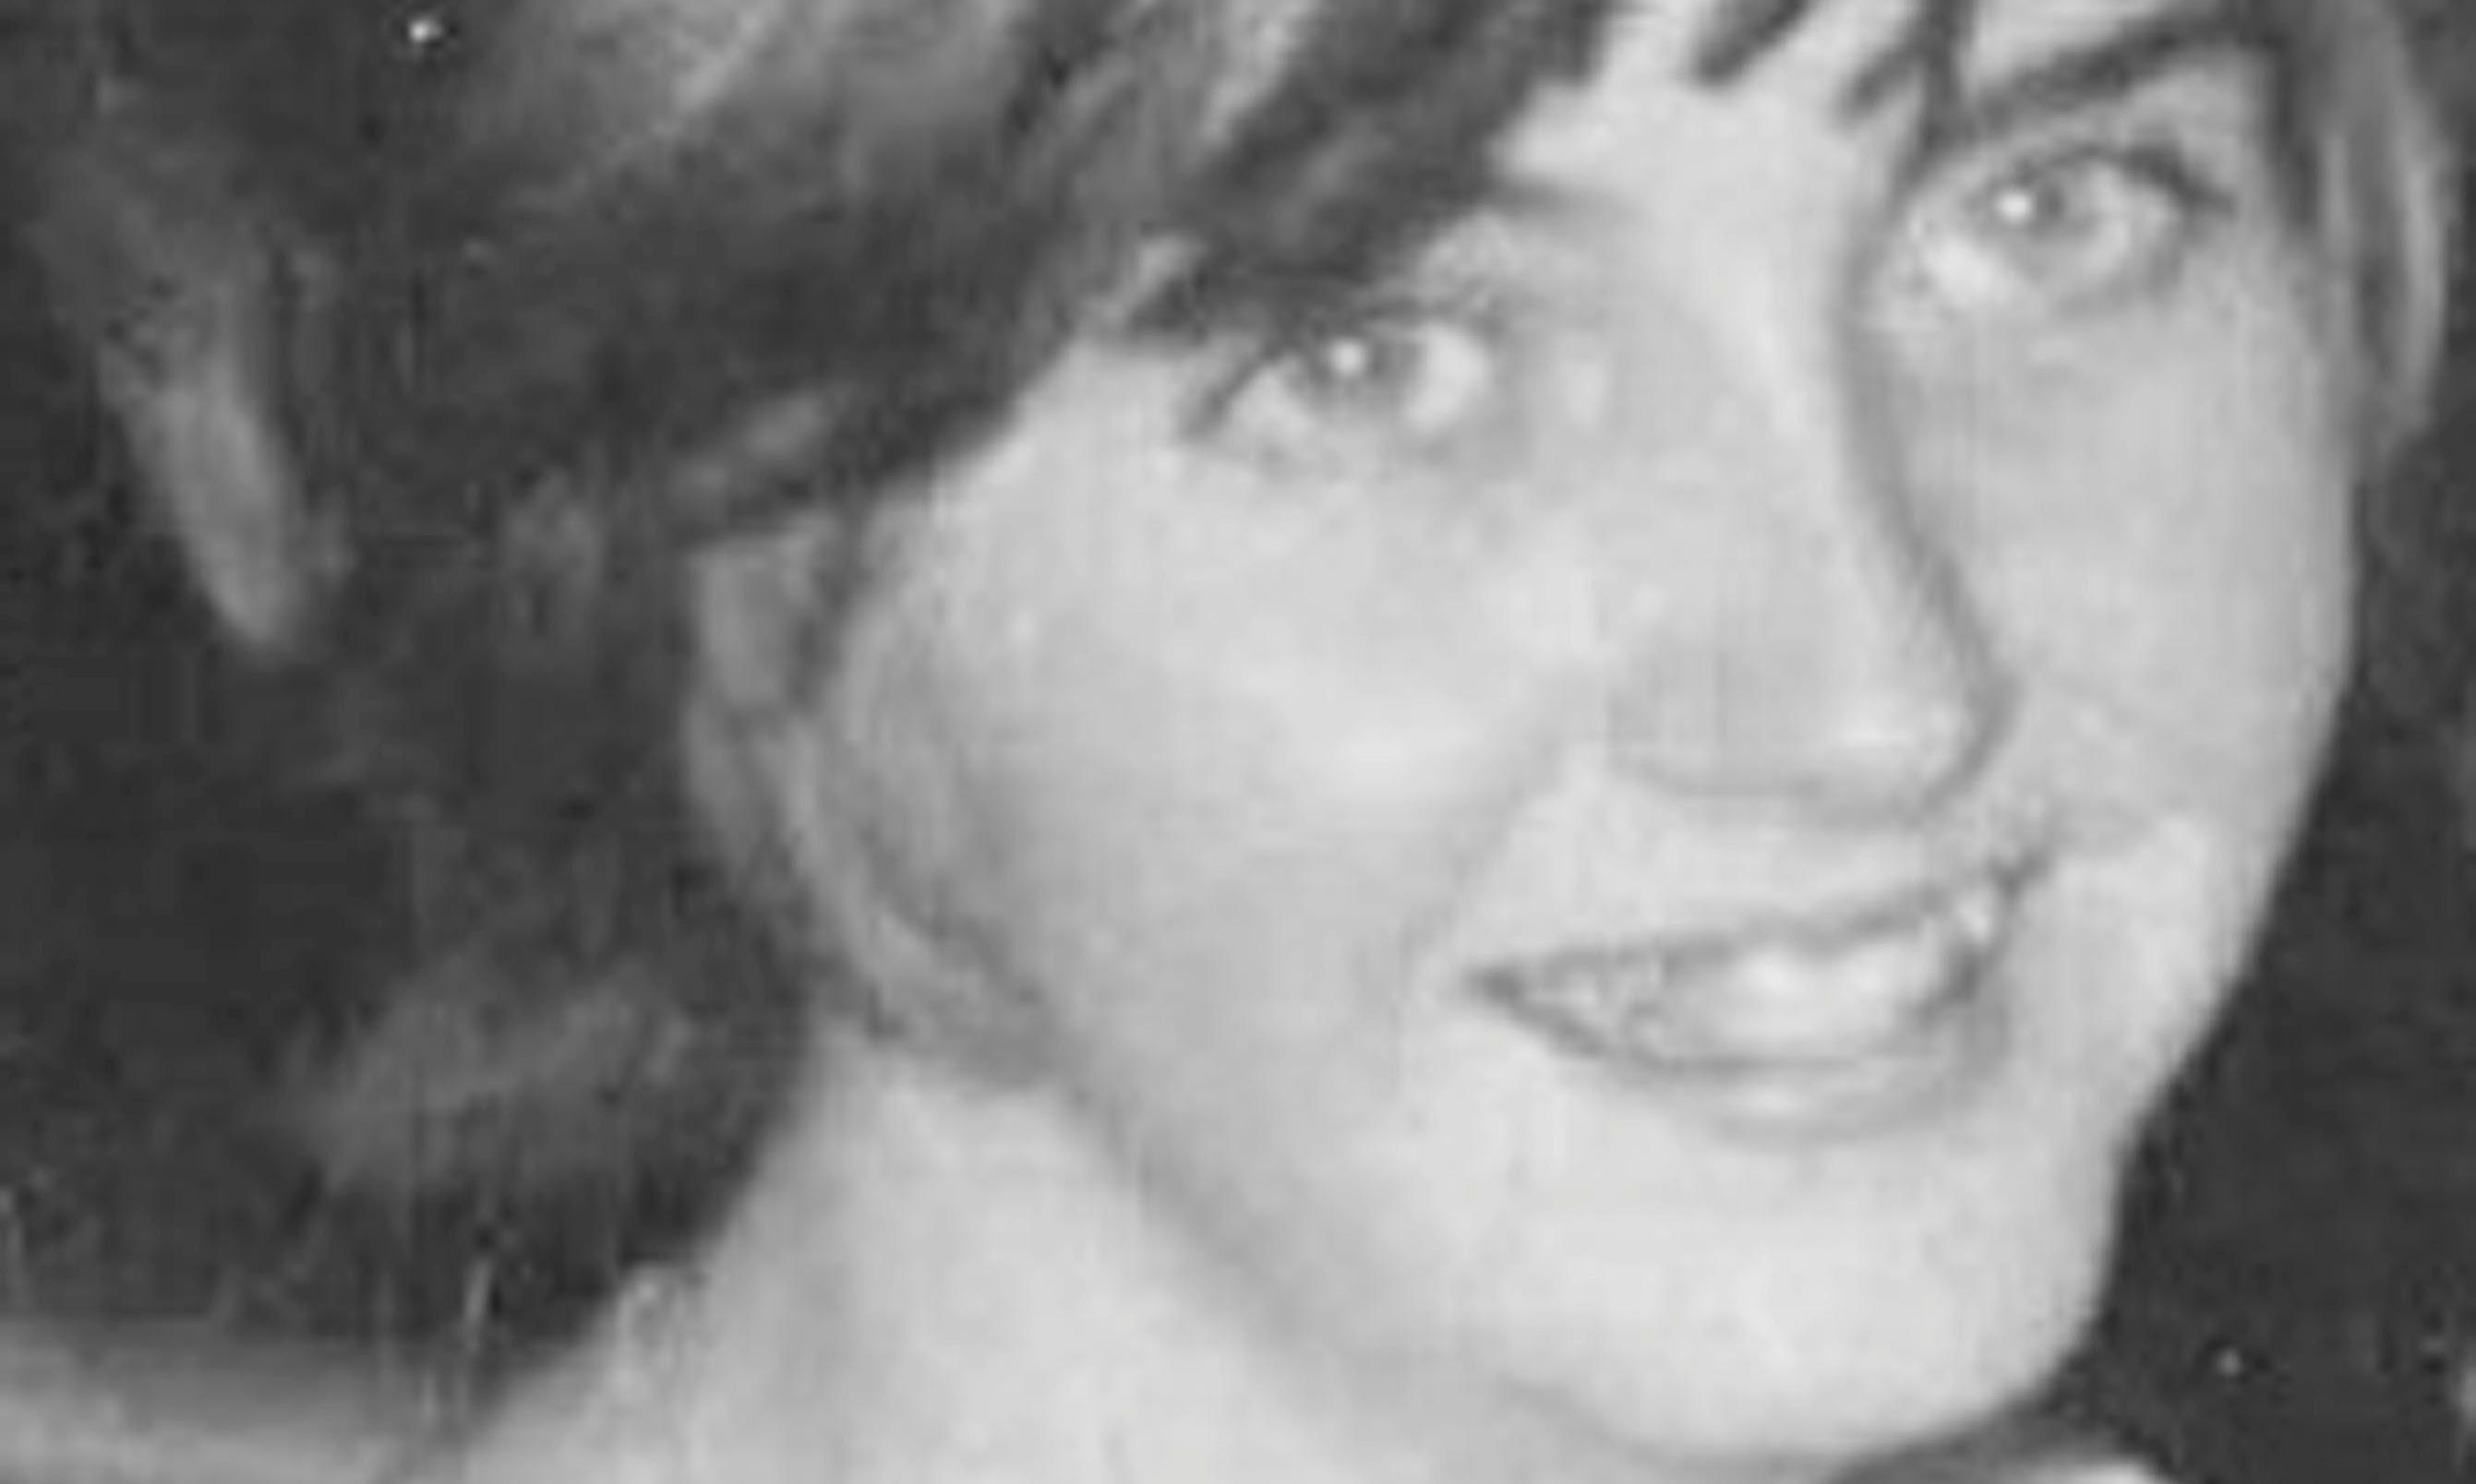 Elsie Frost murder: inquest told suspect went on to rape and murder other girls